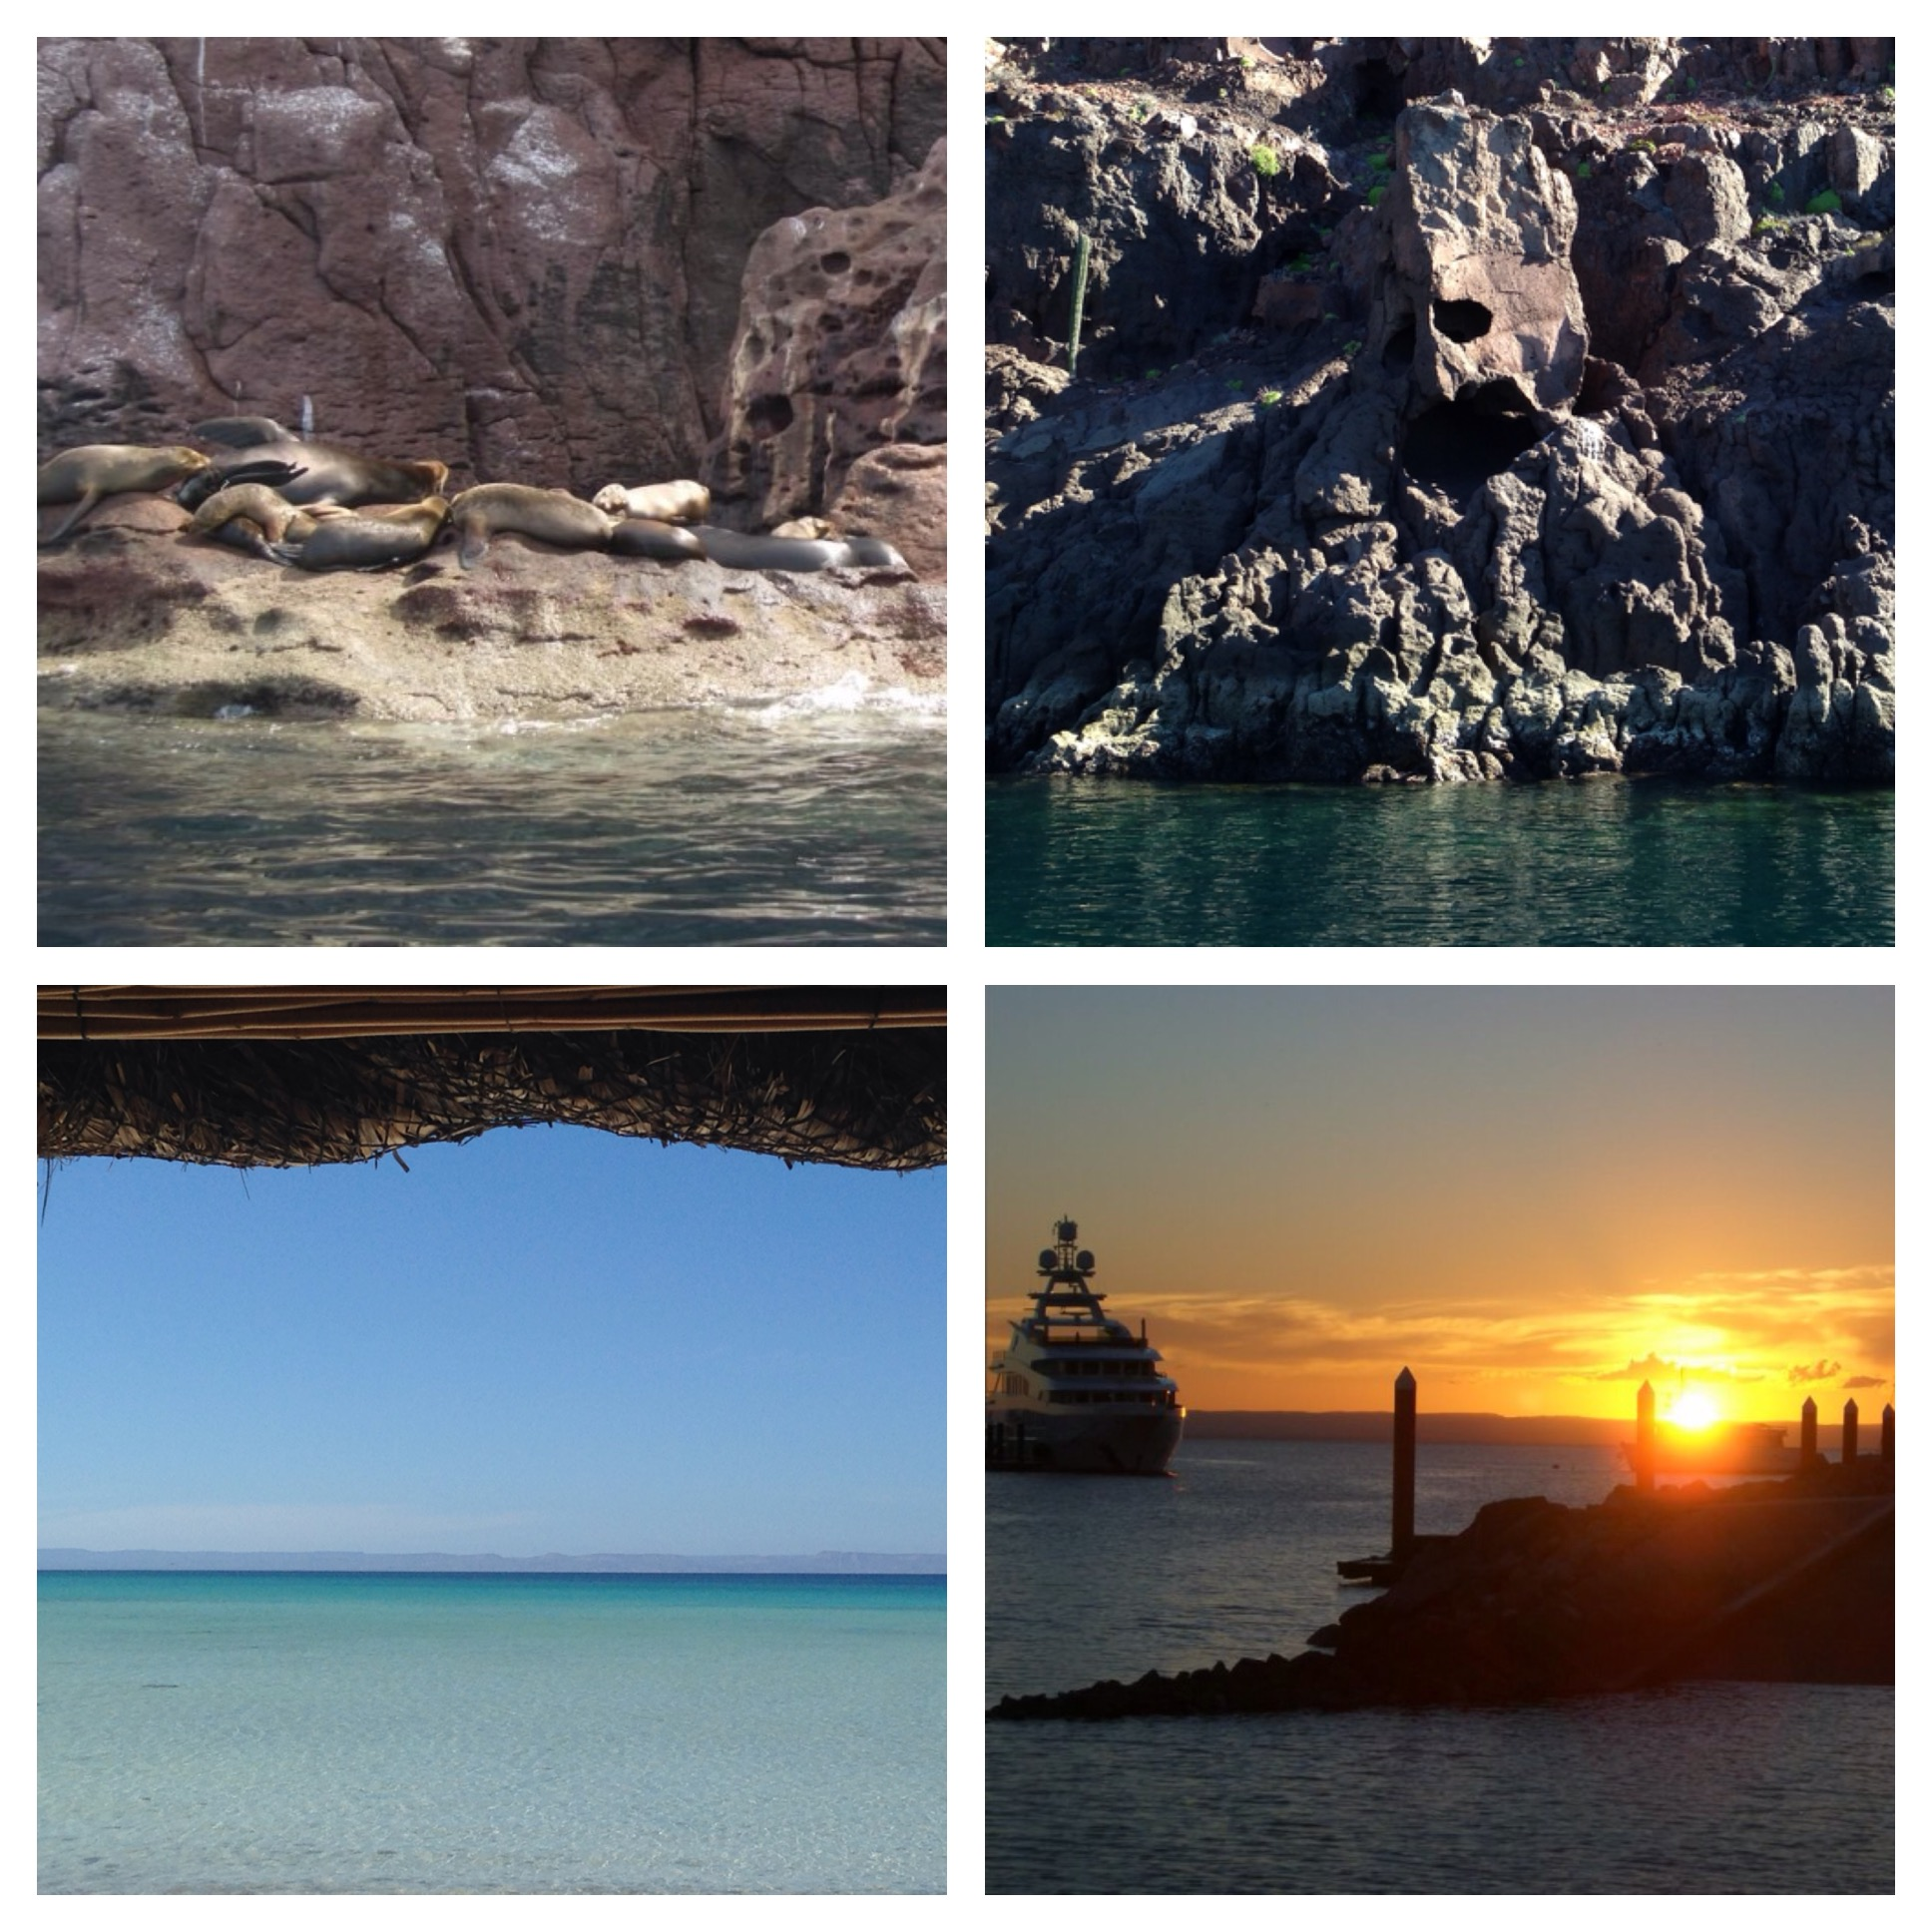 Top Left: We went on a day excursion of whale watching and snorkeling with sea lions. Yes, we dived in the water right next to these sea lions to snorkel as they swam around us! Top Right: This rock formation looks like a mask. Bottom Left: A relaxing day at the beach. Bottom Right: Twilight in La Paz.